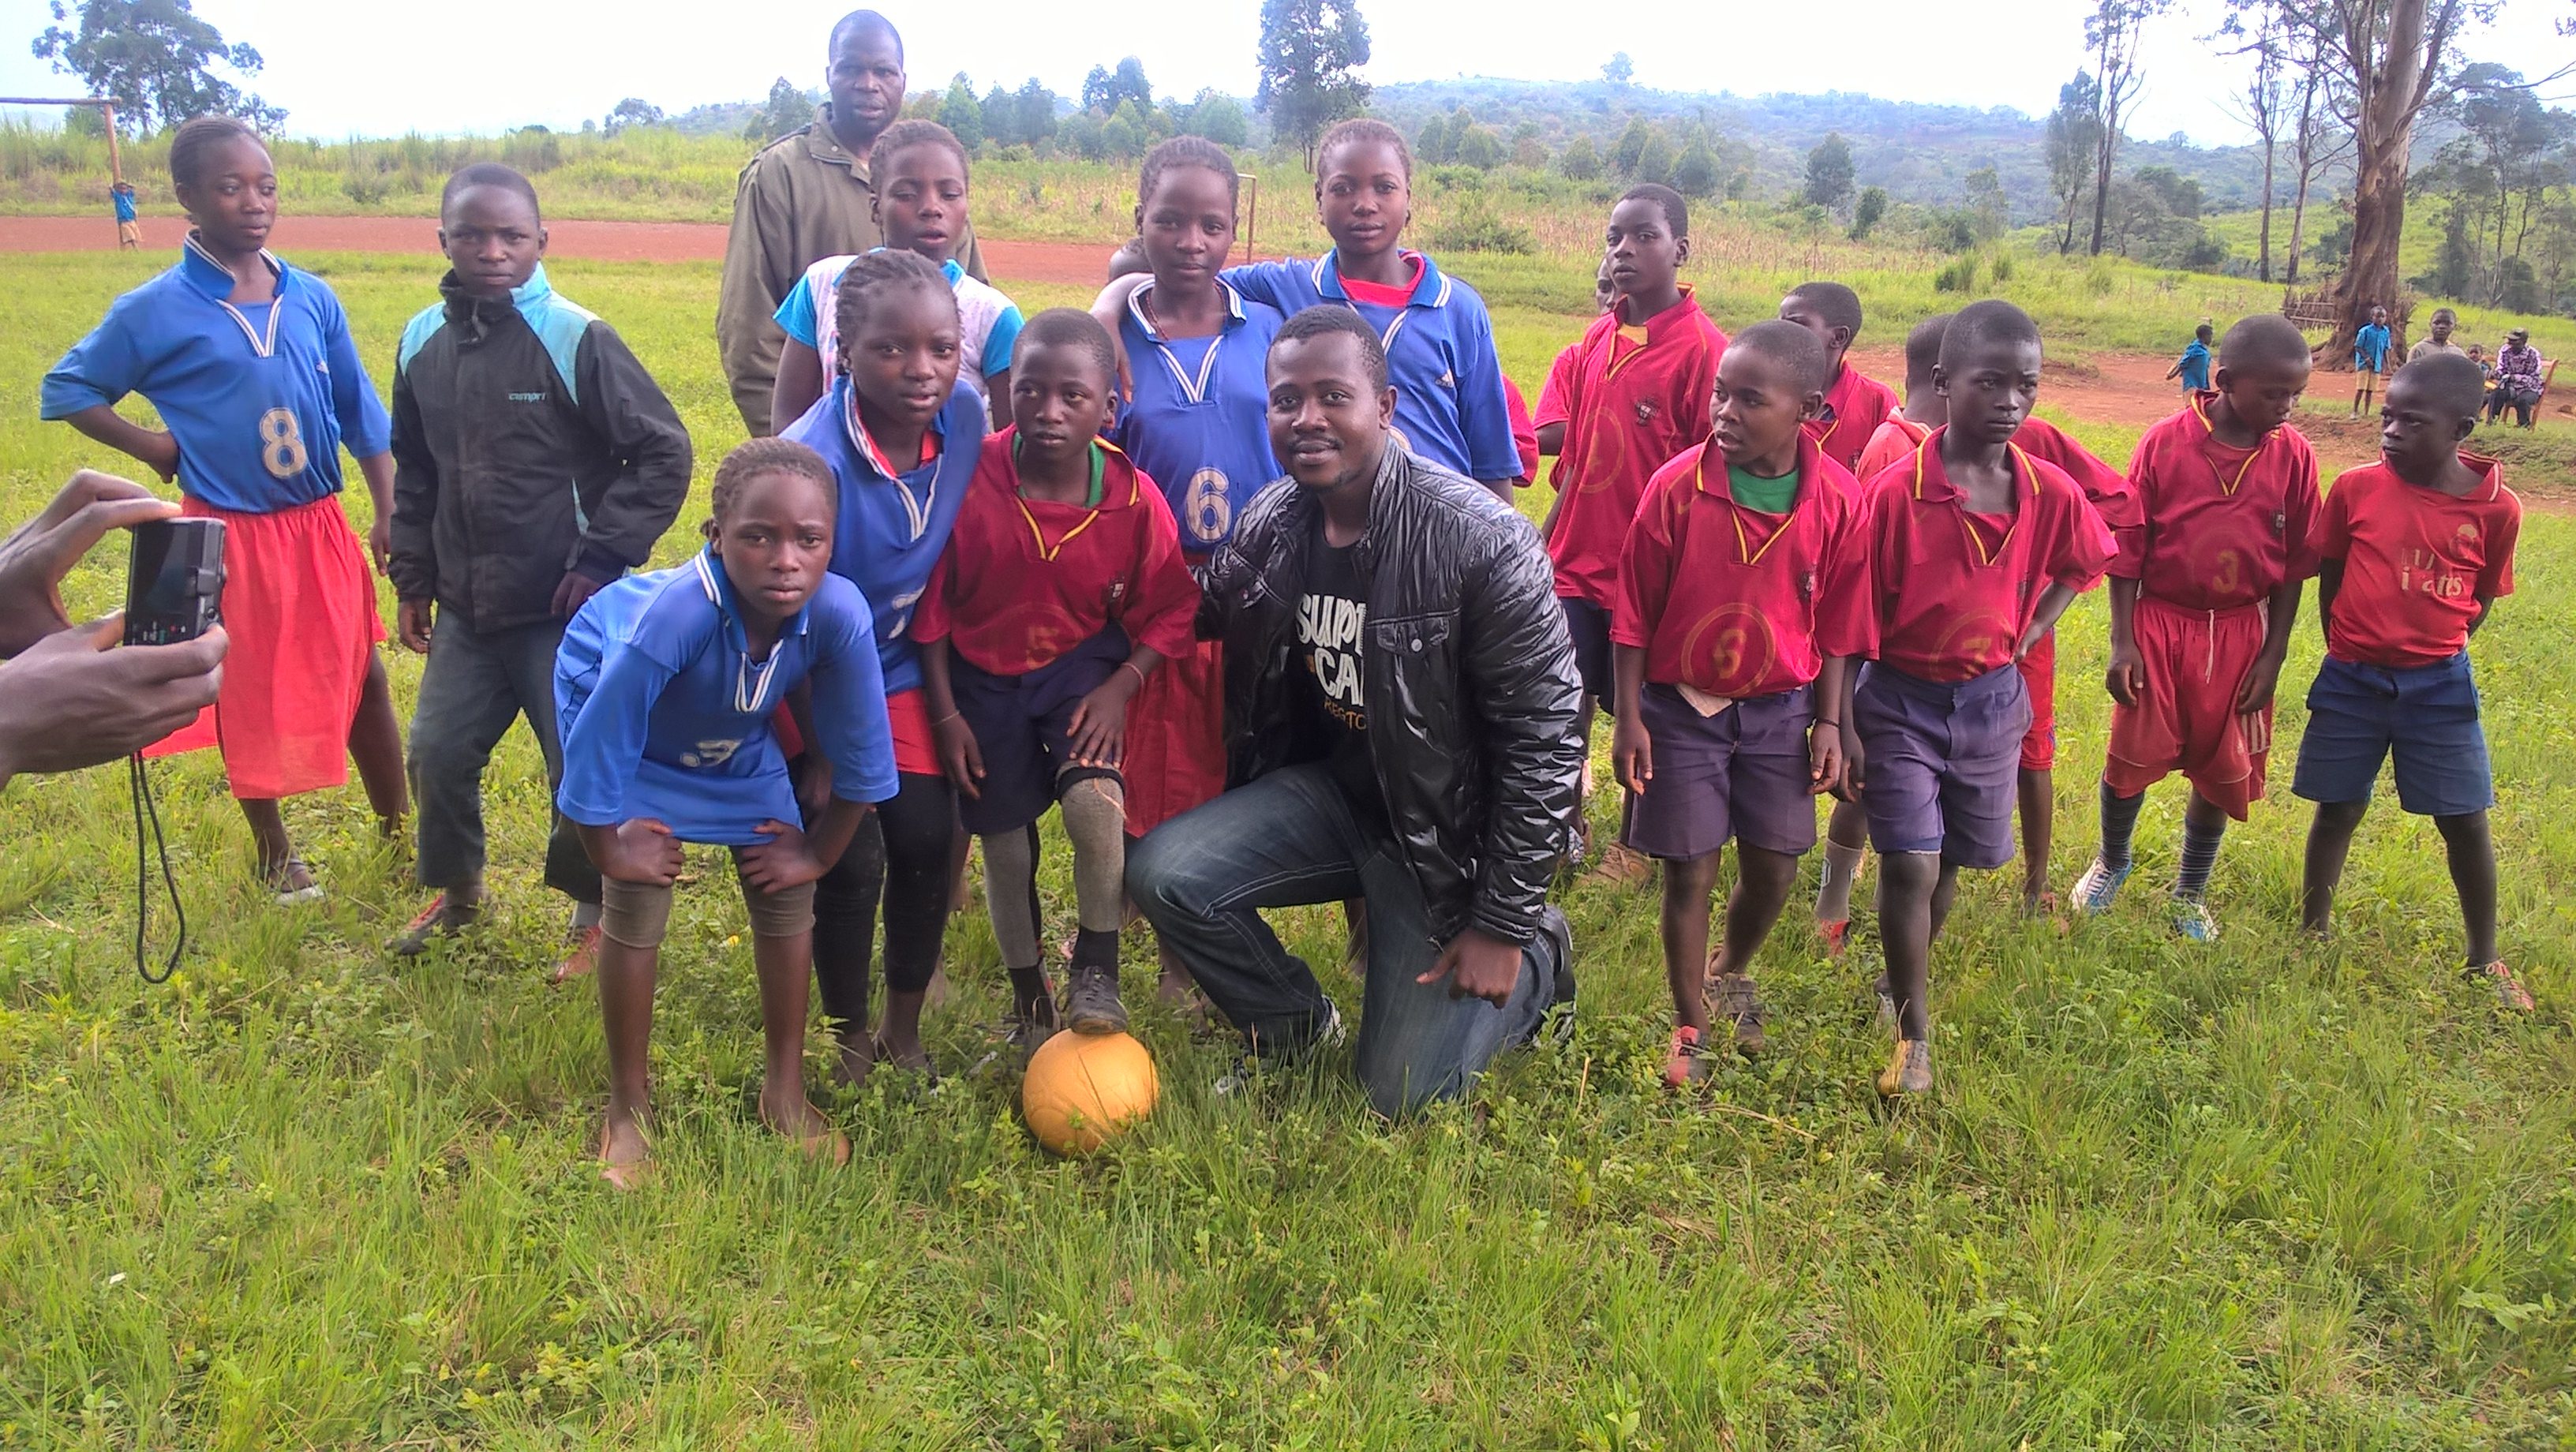 Football: a means to promote environmental awareness in local communities